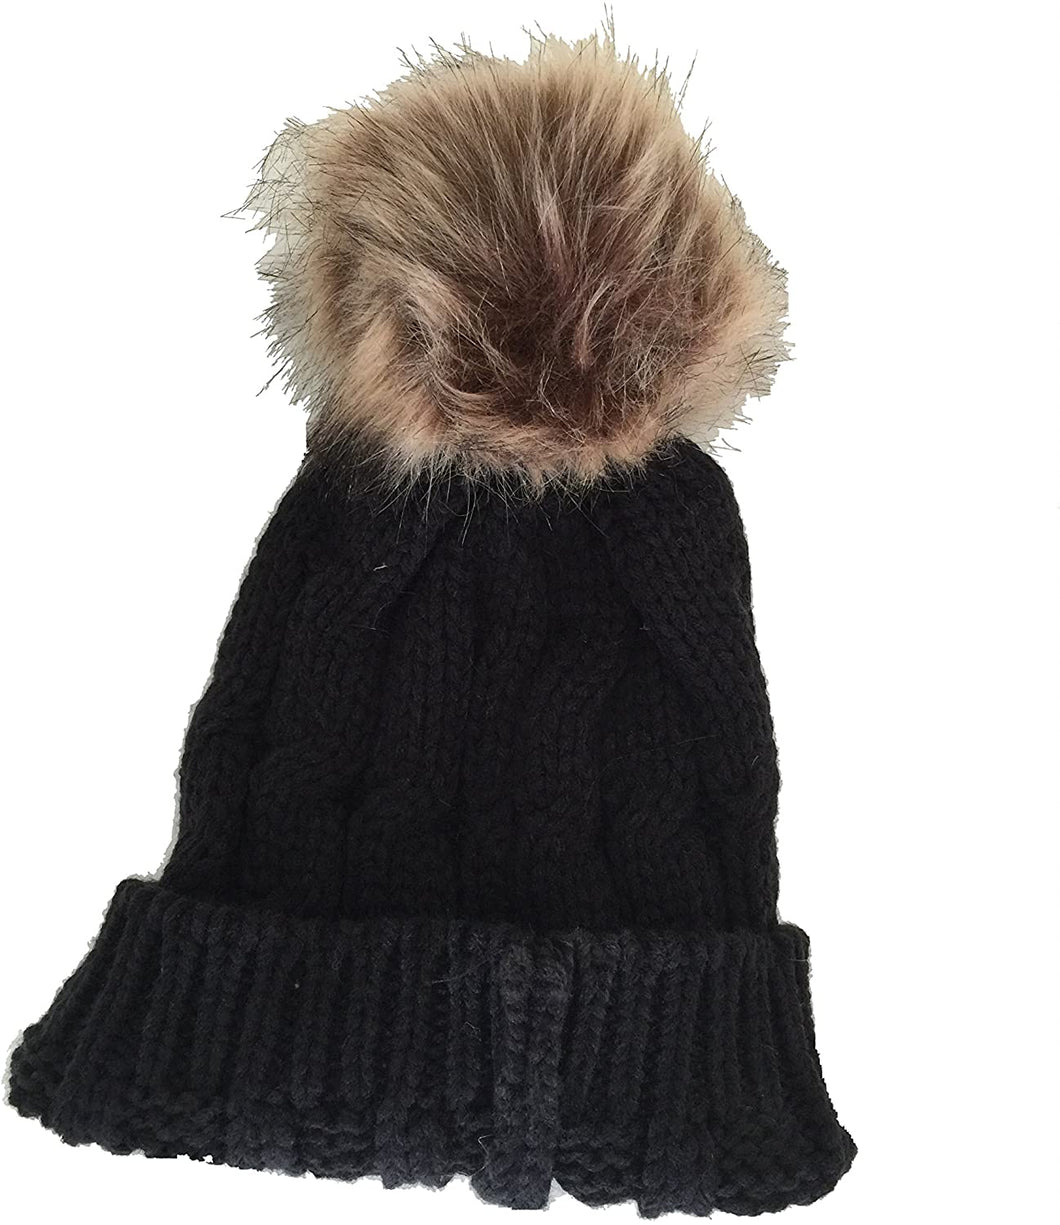 Pamper Yourself Now Black Womens Winter Rib Knitted hat/Beanie with Fake Fur Bobble pom pom